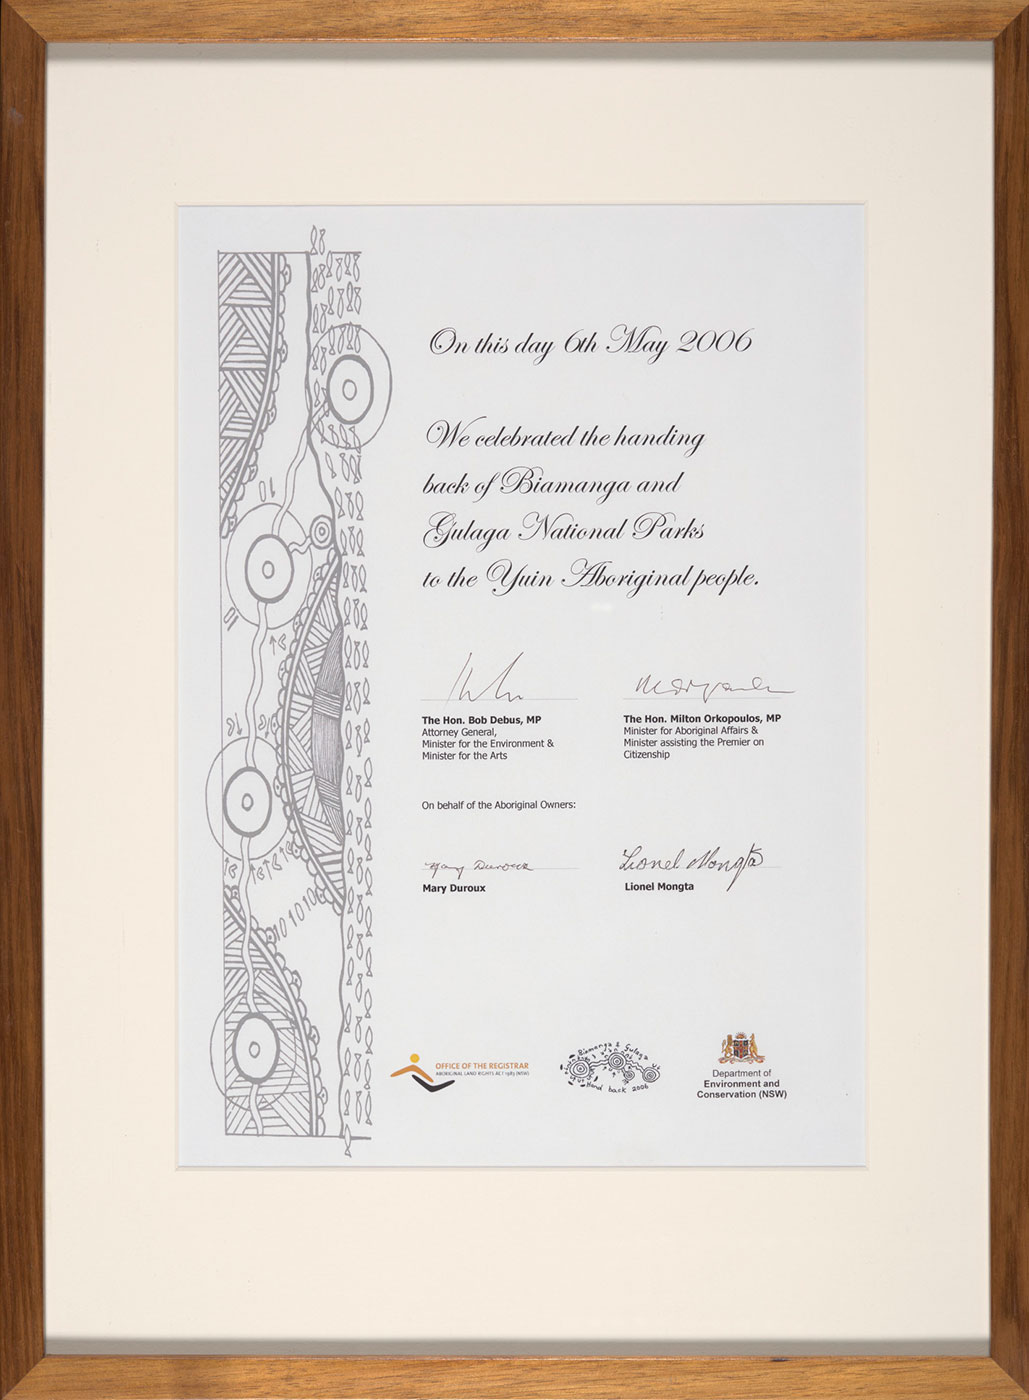 A framed certificate that reads 'On this day 6th May 2006 / We celebrated the handing / back of Biamanga and / Gulaga National Parks / to the Yuin Aboriginal people.' It is signed by 'The Hon. Bob Debus MP', 'The Hon. Milton Orkopoulos, MP', 'Mary Duroux' and 'Lionel Mongta'.